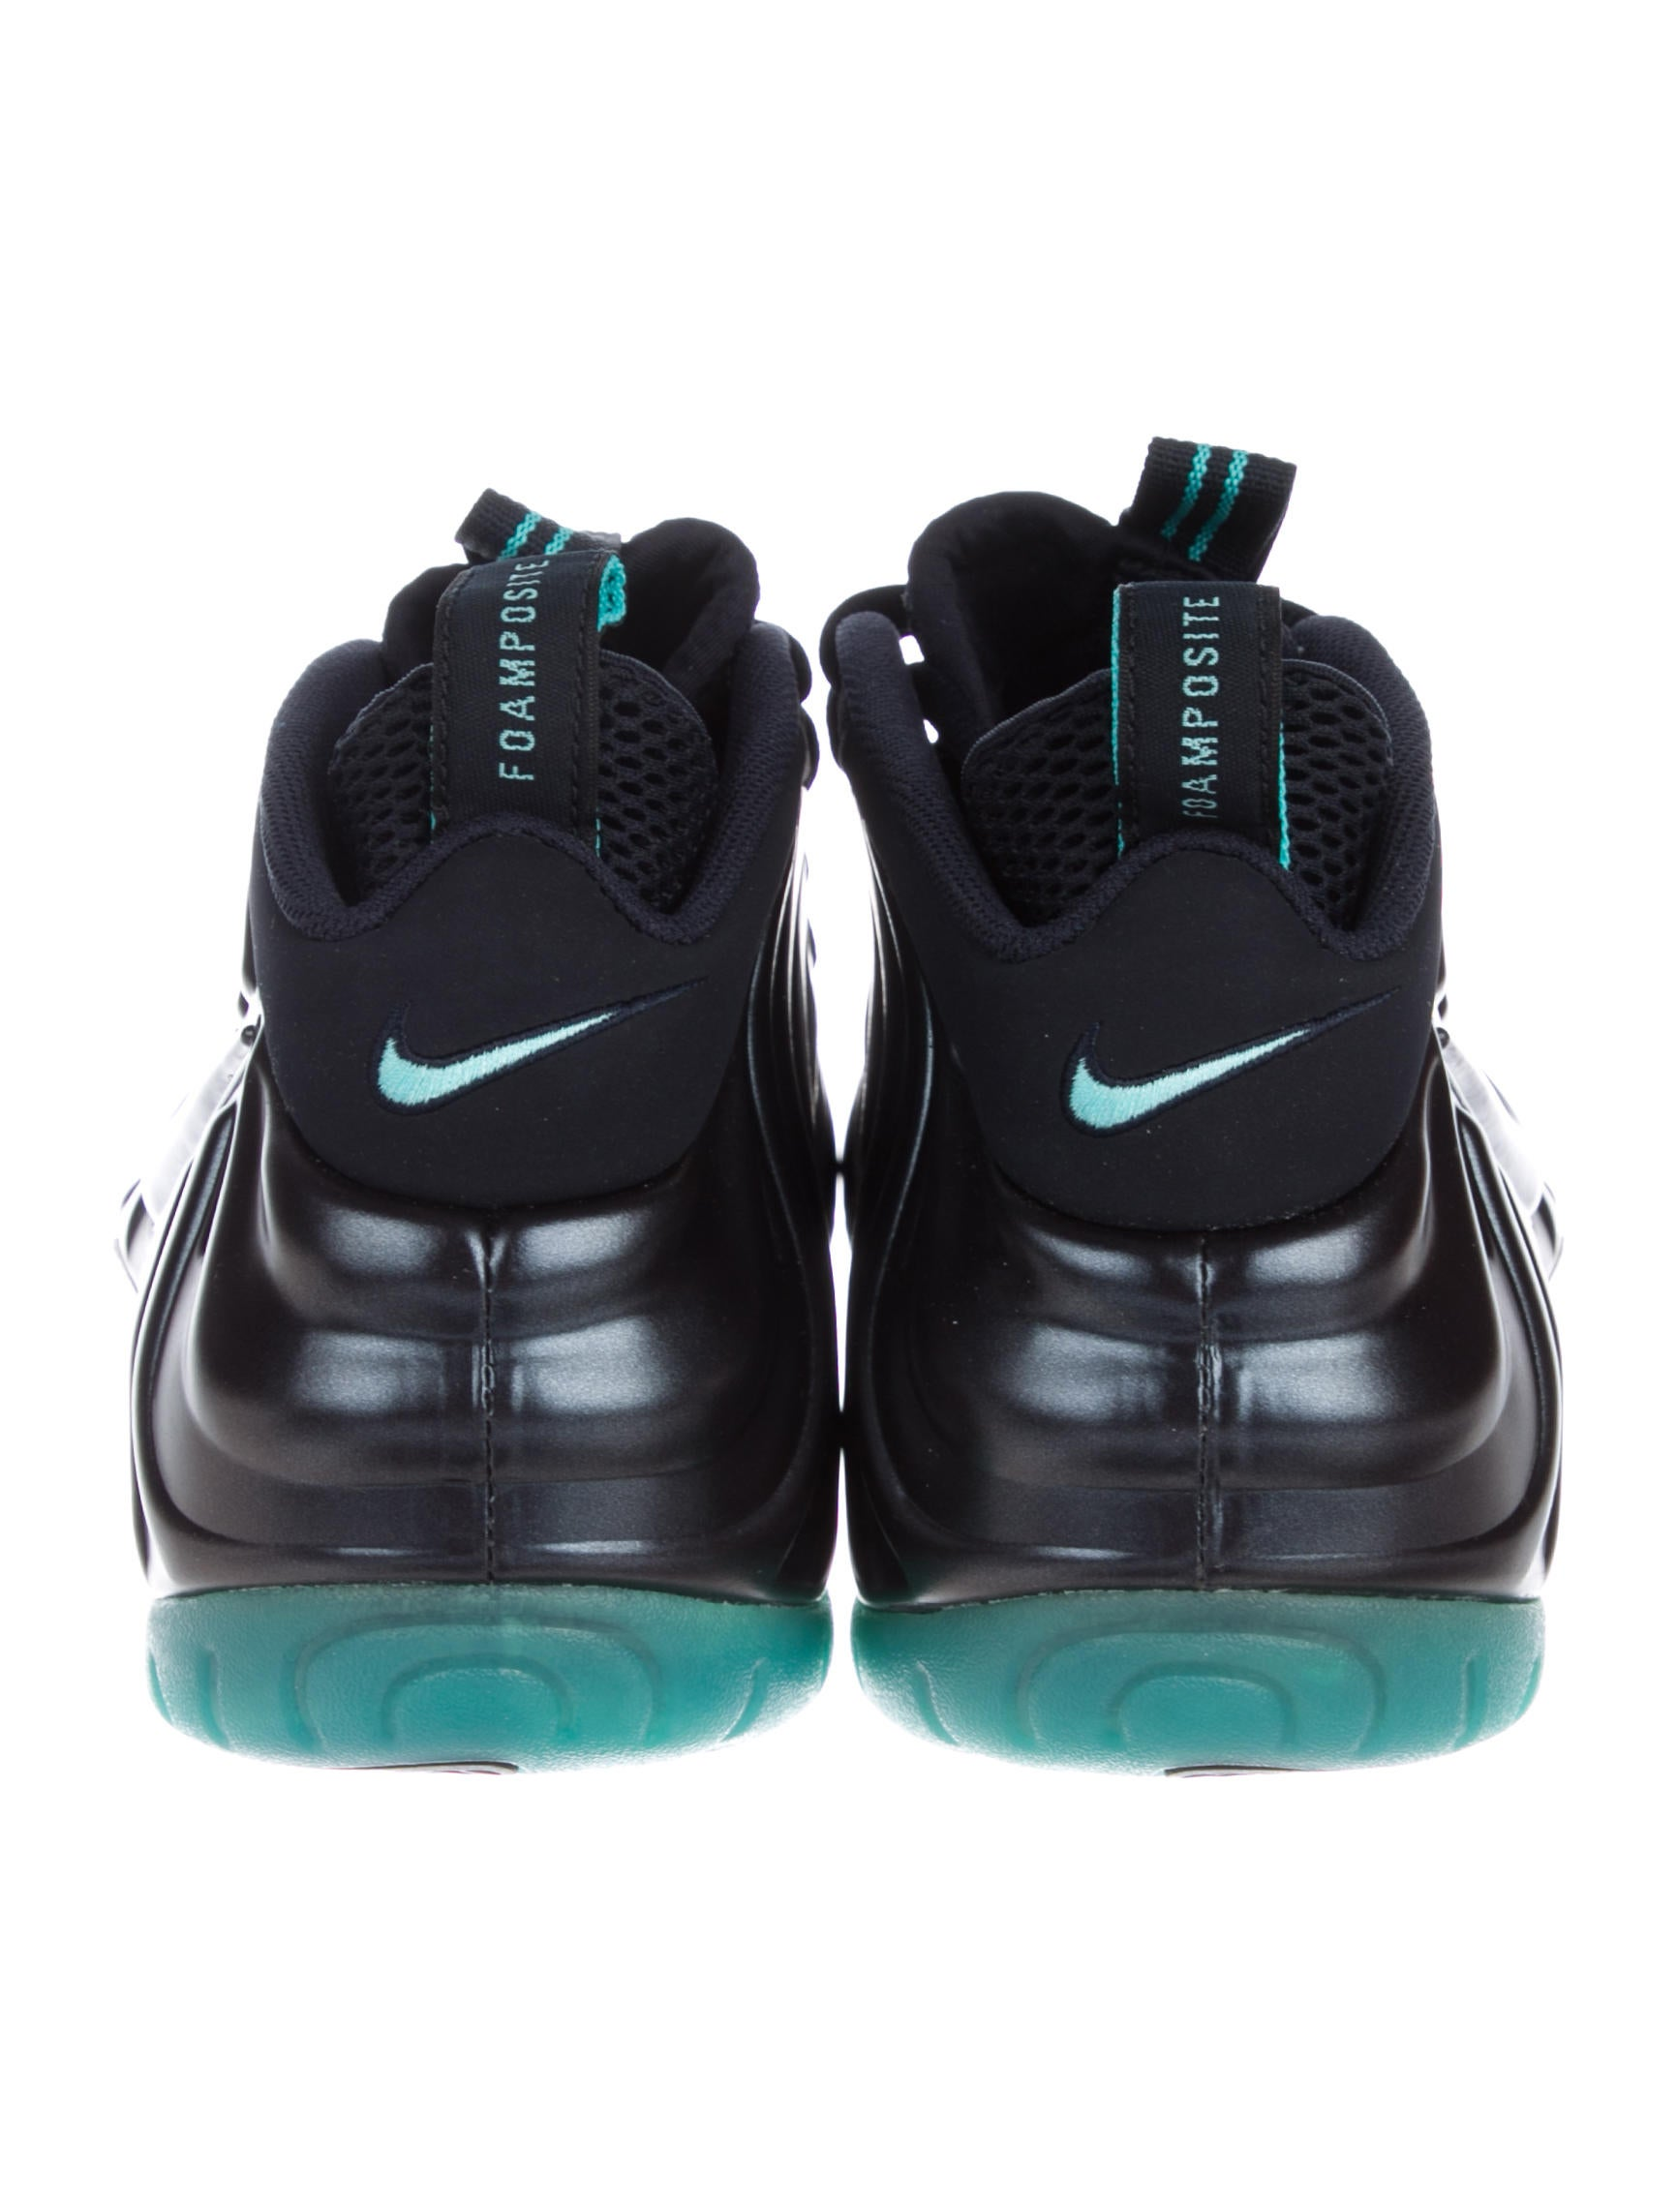 5799cd9237f where can i buy nike air foamposite pro turquoise 9c6f2 11043